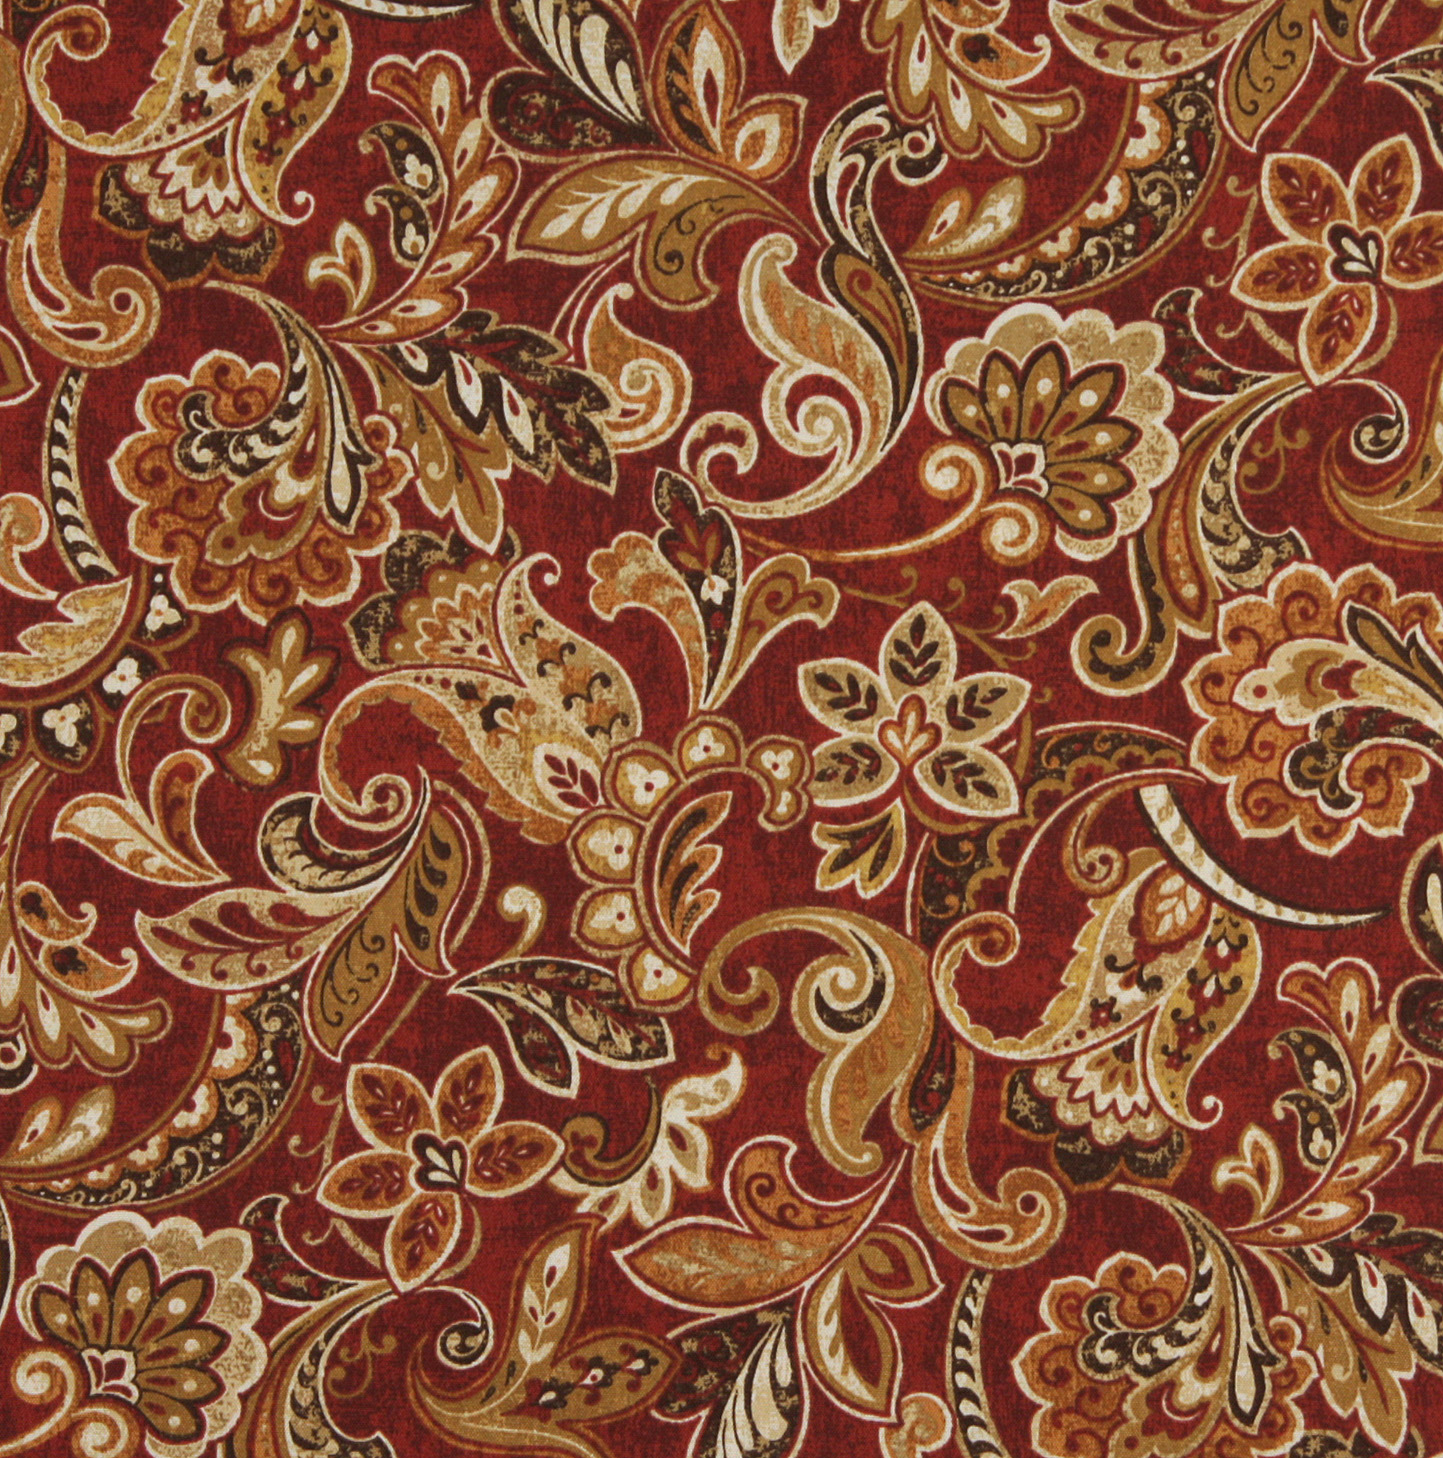 Red Beige And Brown Large Floral Paisley Upholstery Fabric